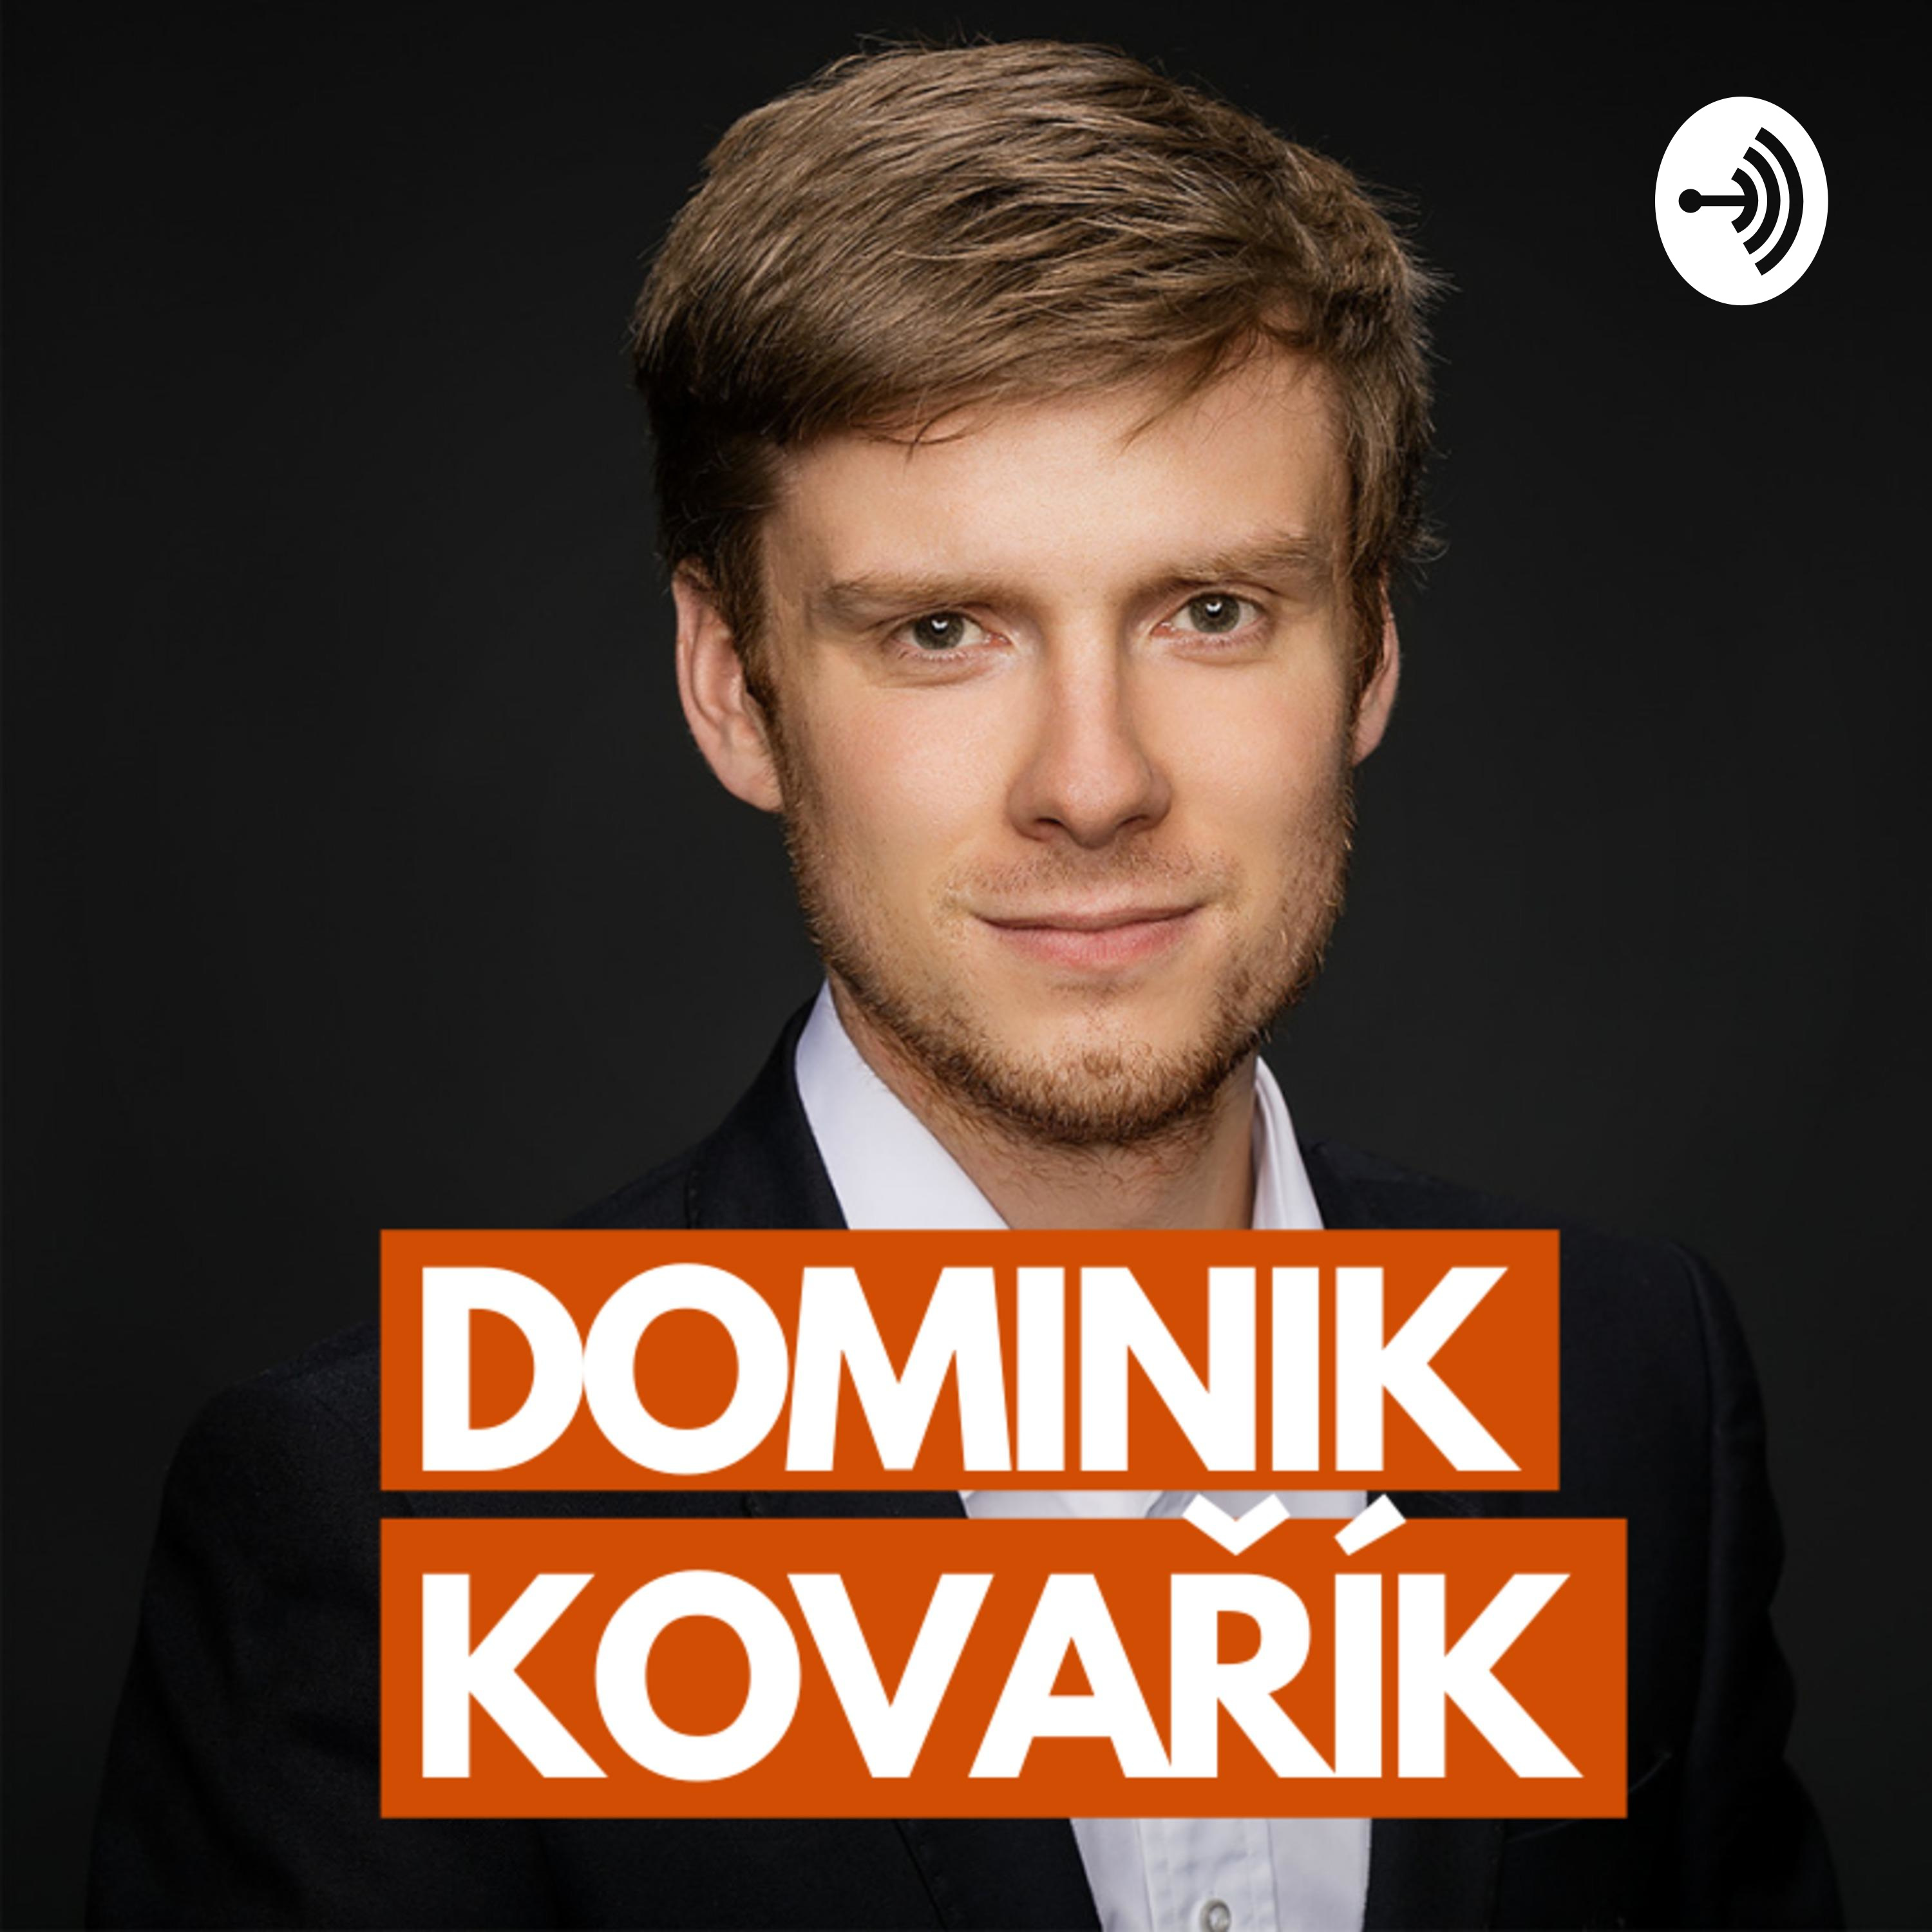 Dominik Kovarik